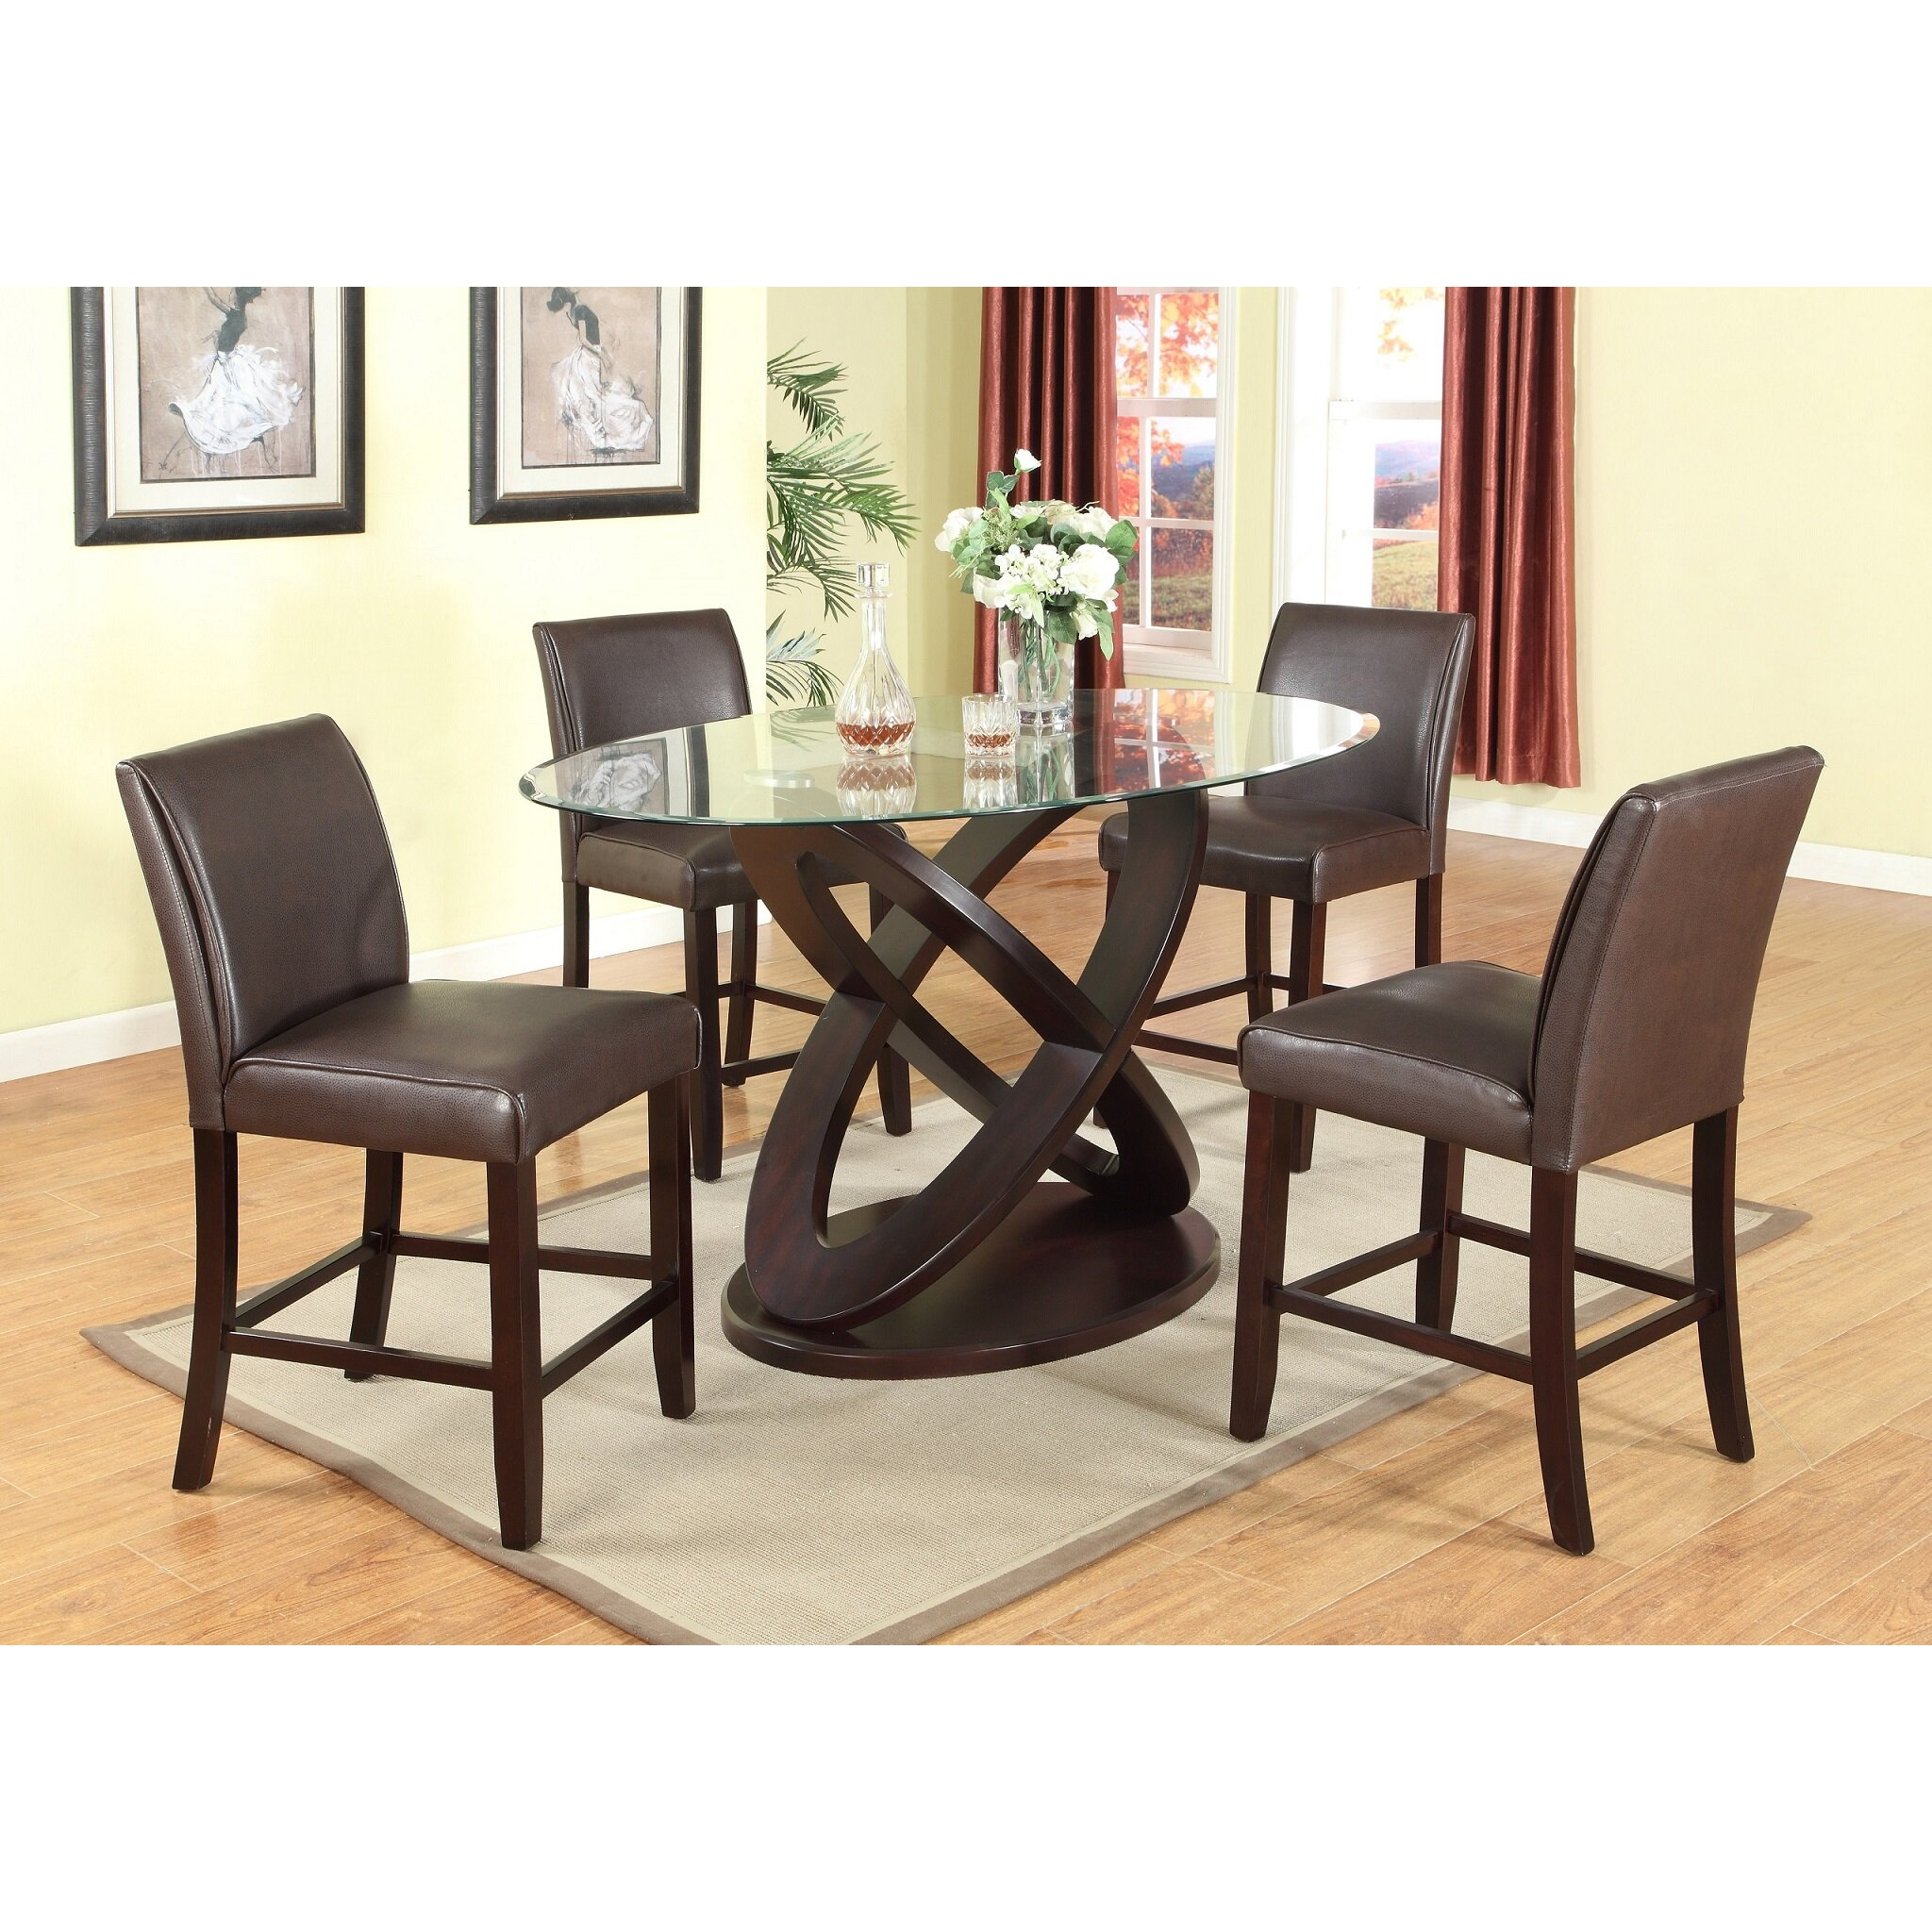 Roundhill Furniture Cicicol 5 Piece Counter Height Dining